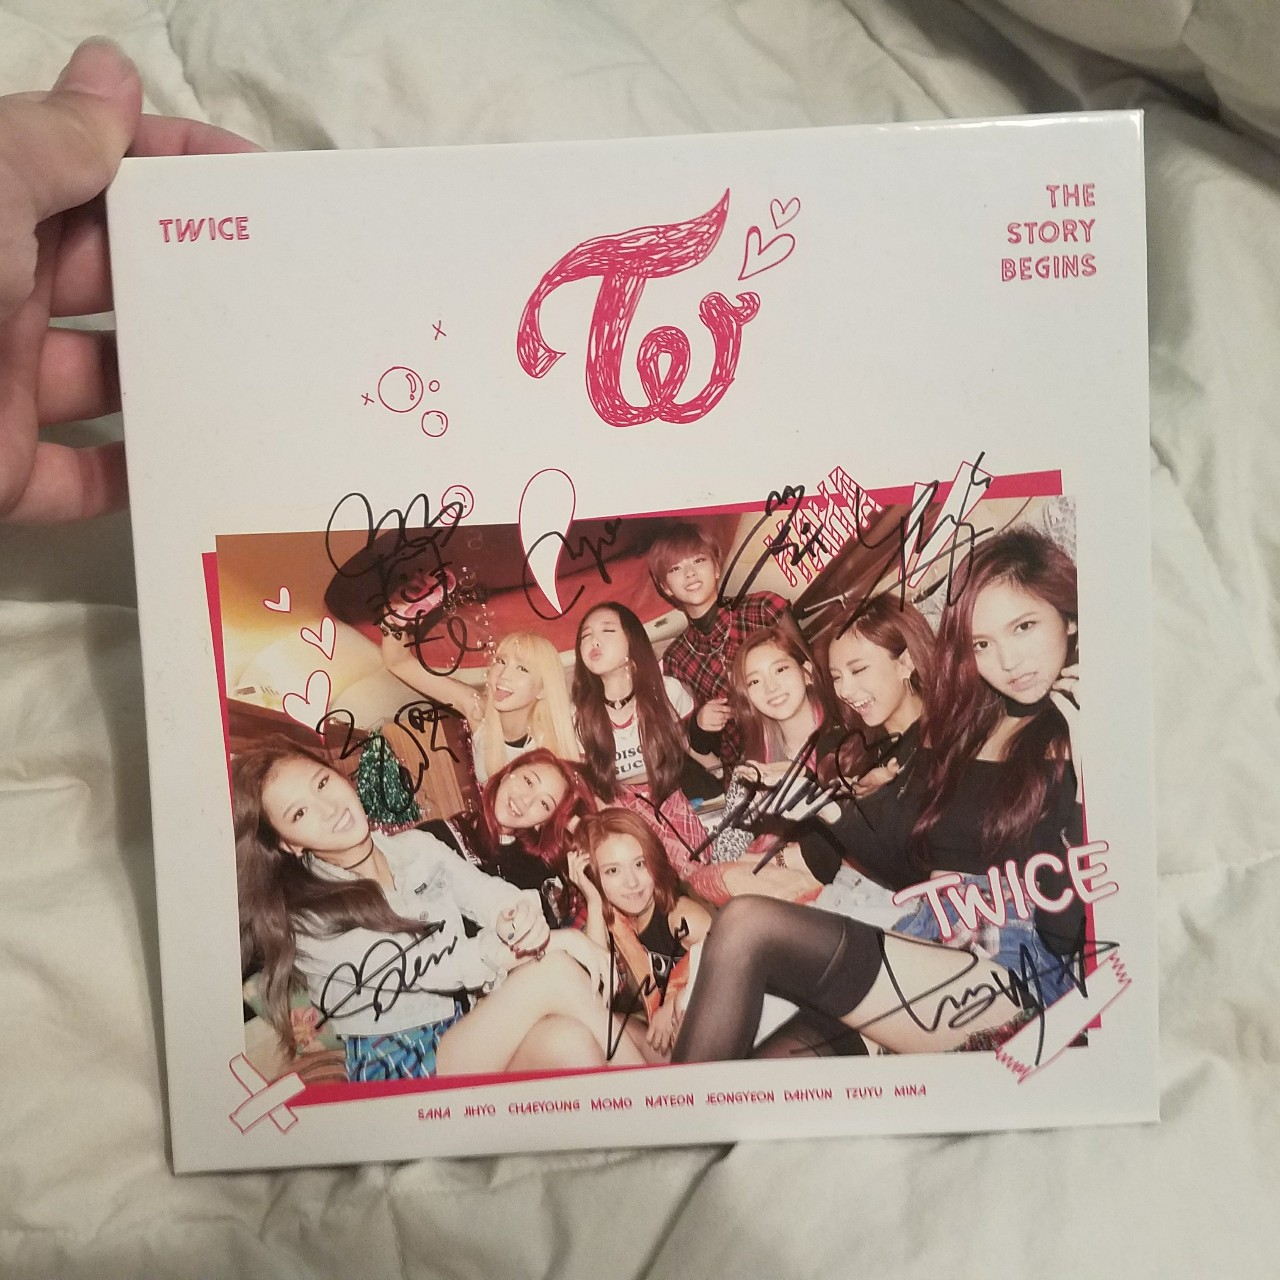 !SIGNED! Twice 'The Story Begins' album signed by    - Depop